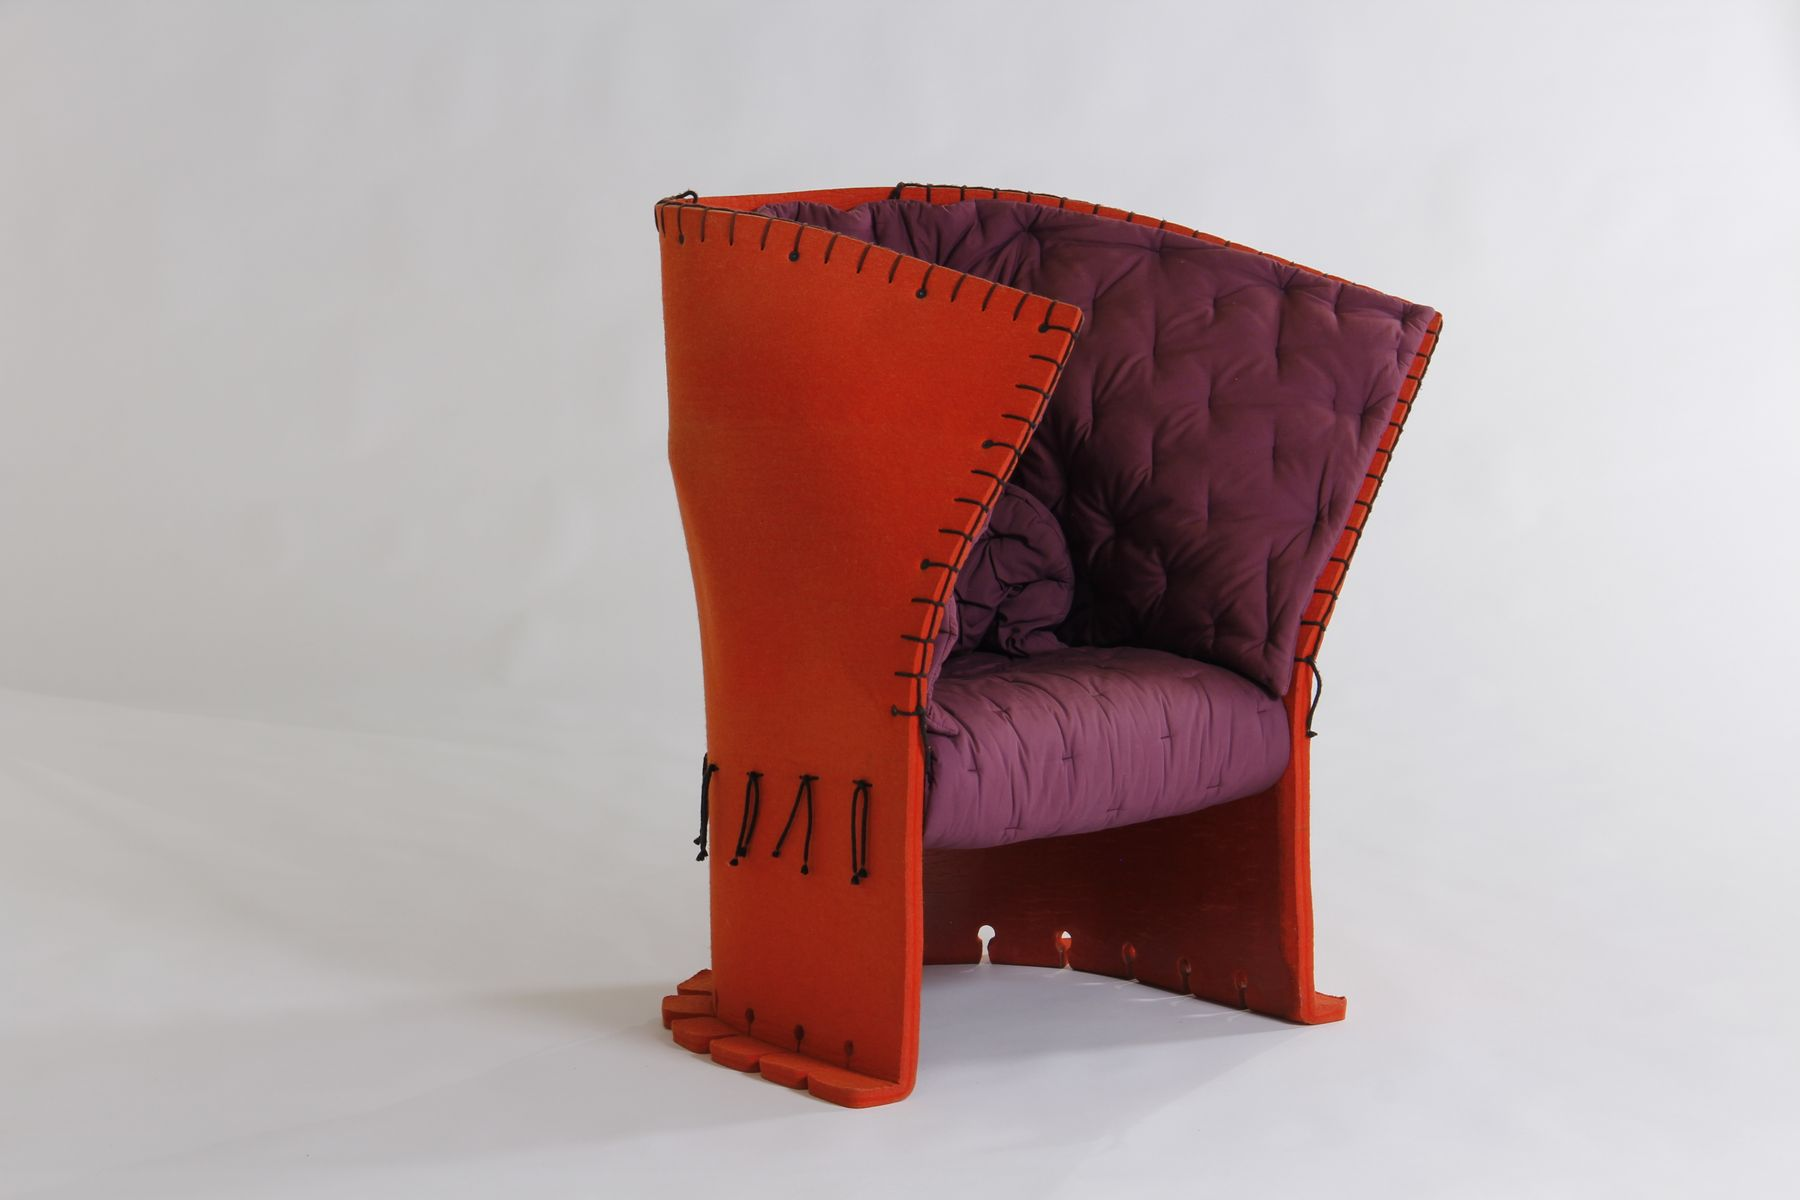 Italian feltri chair by gaetano pesce for cassina 1980s for 1980s chair